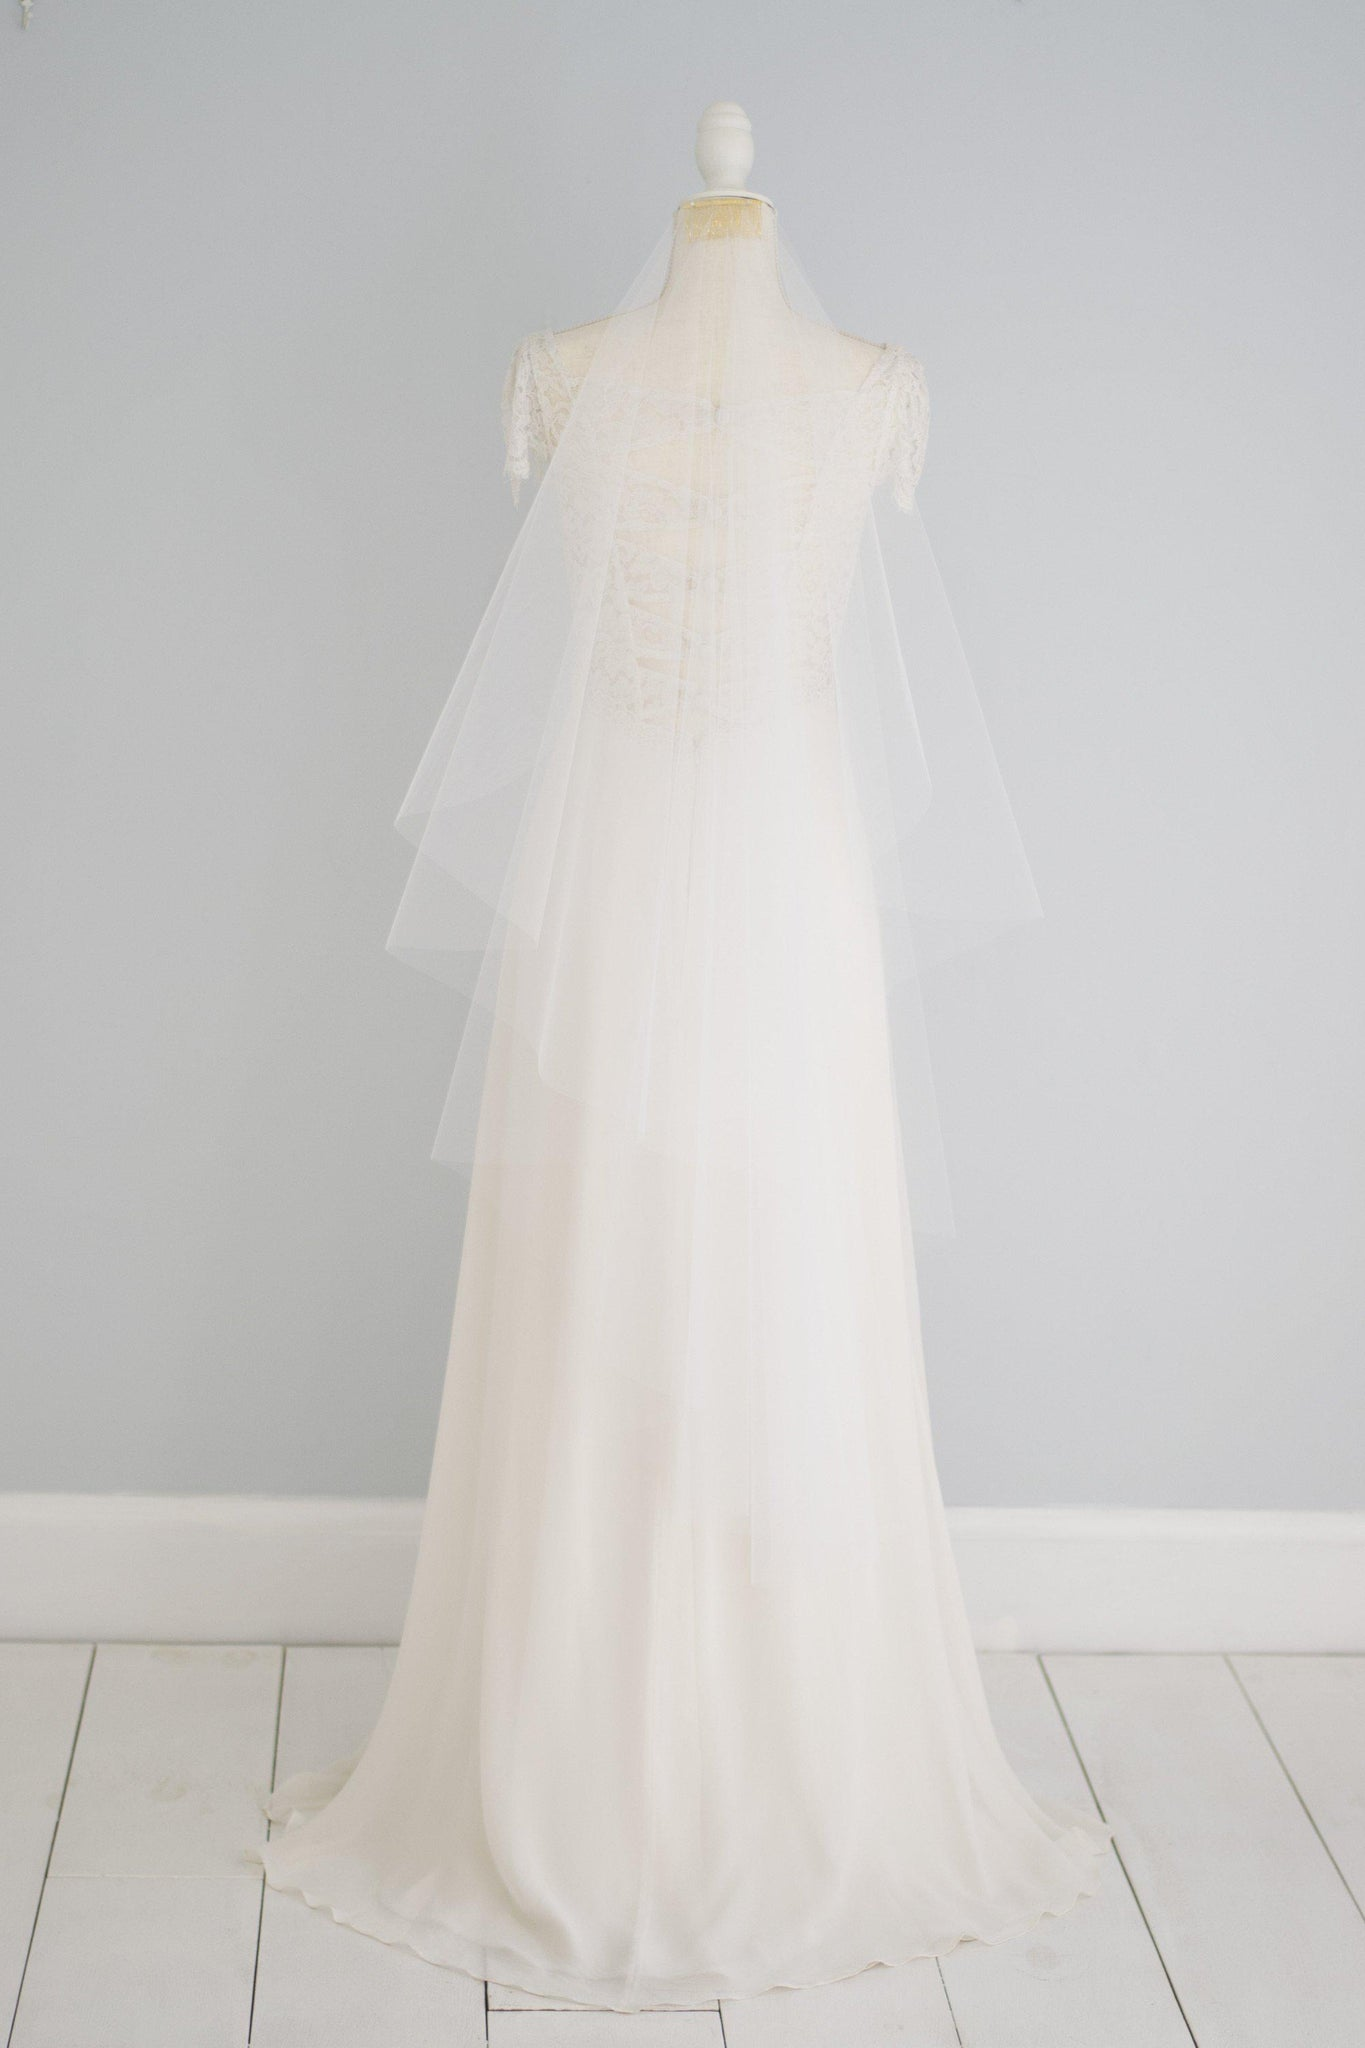 Waterfall cut barely there wedding veil - 'Emery'